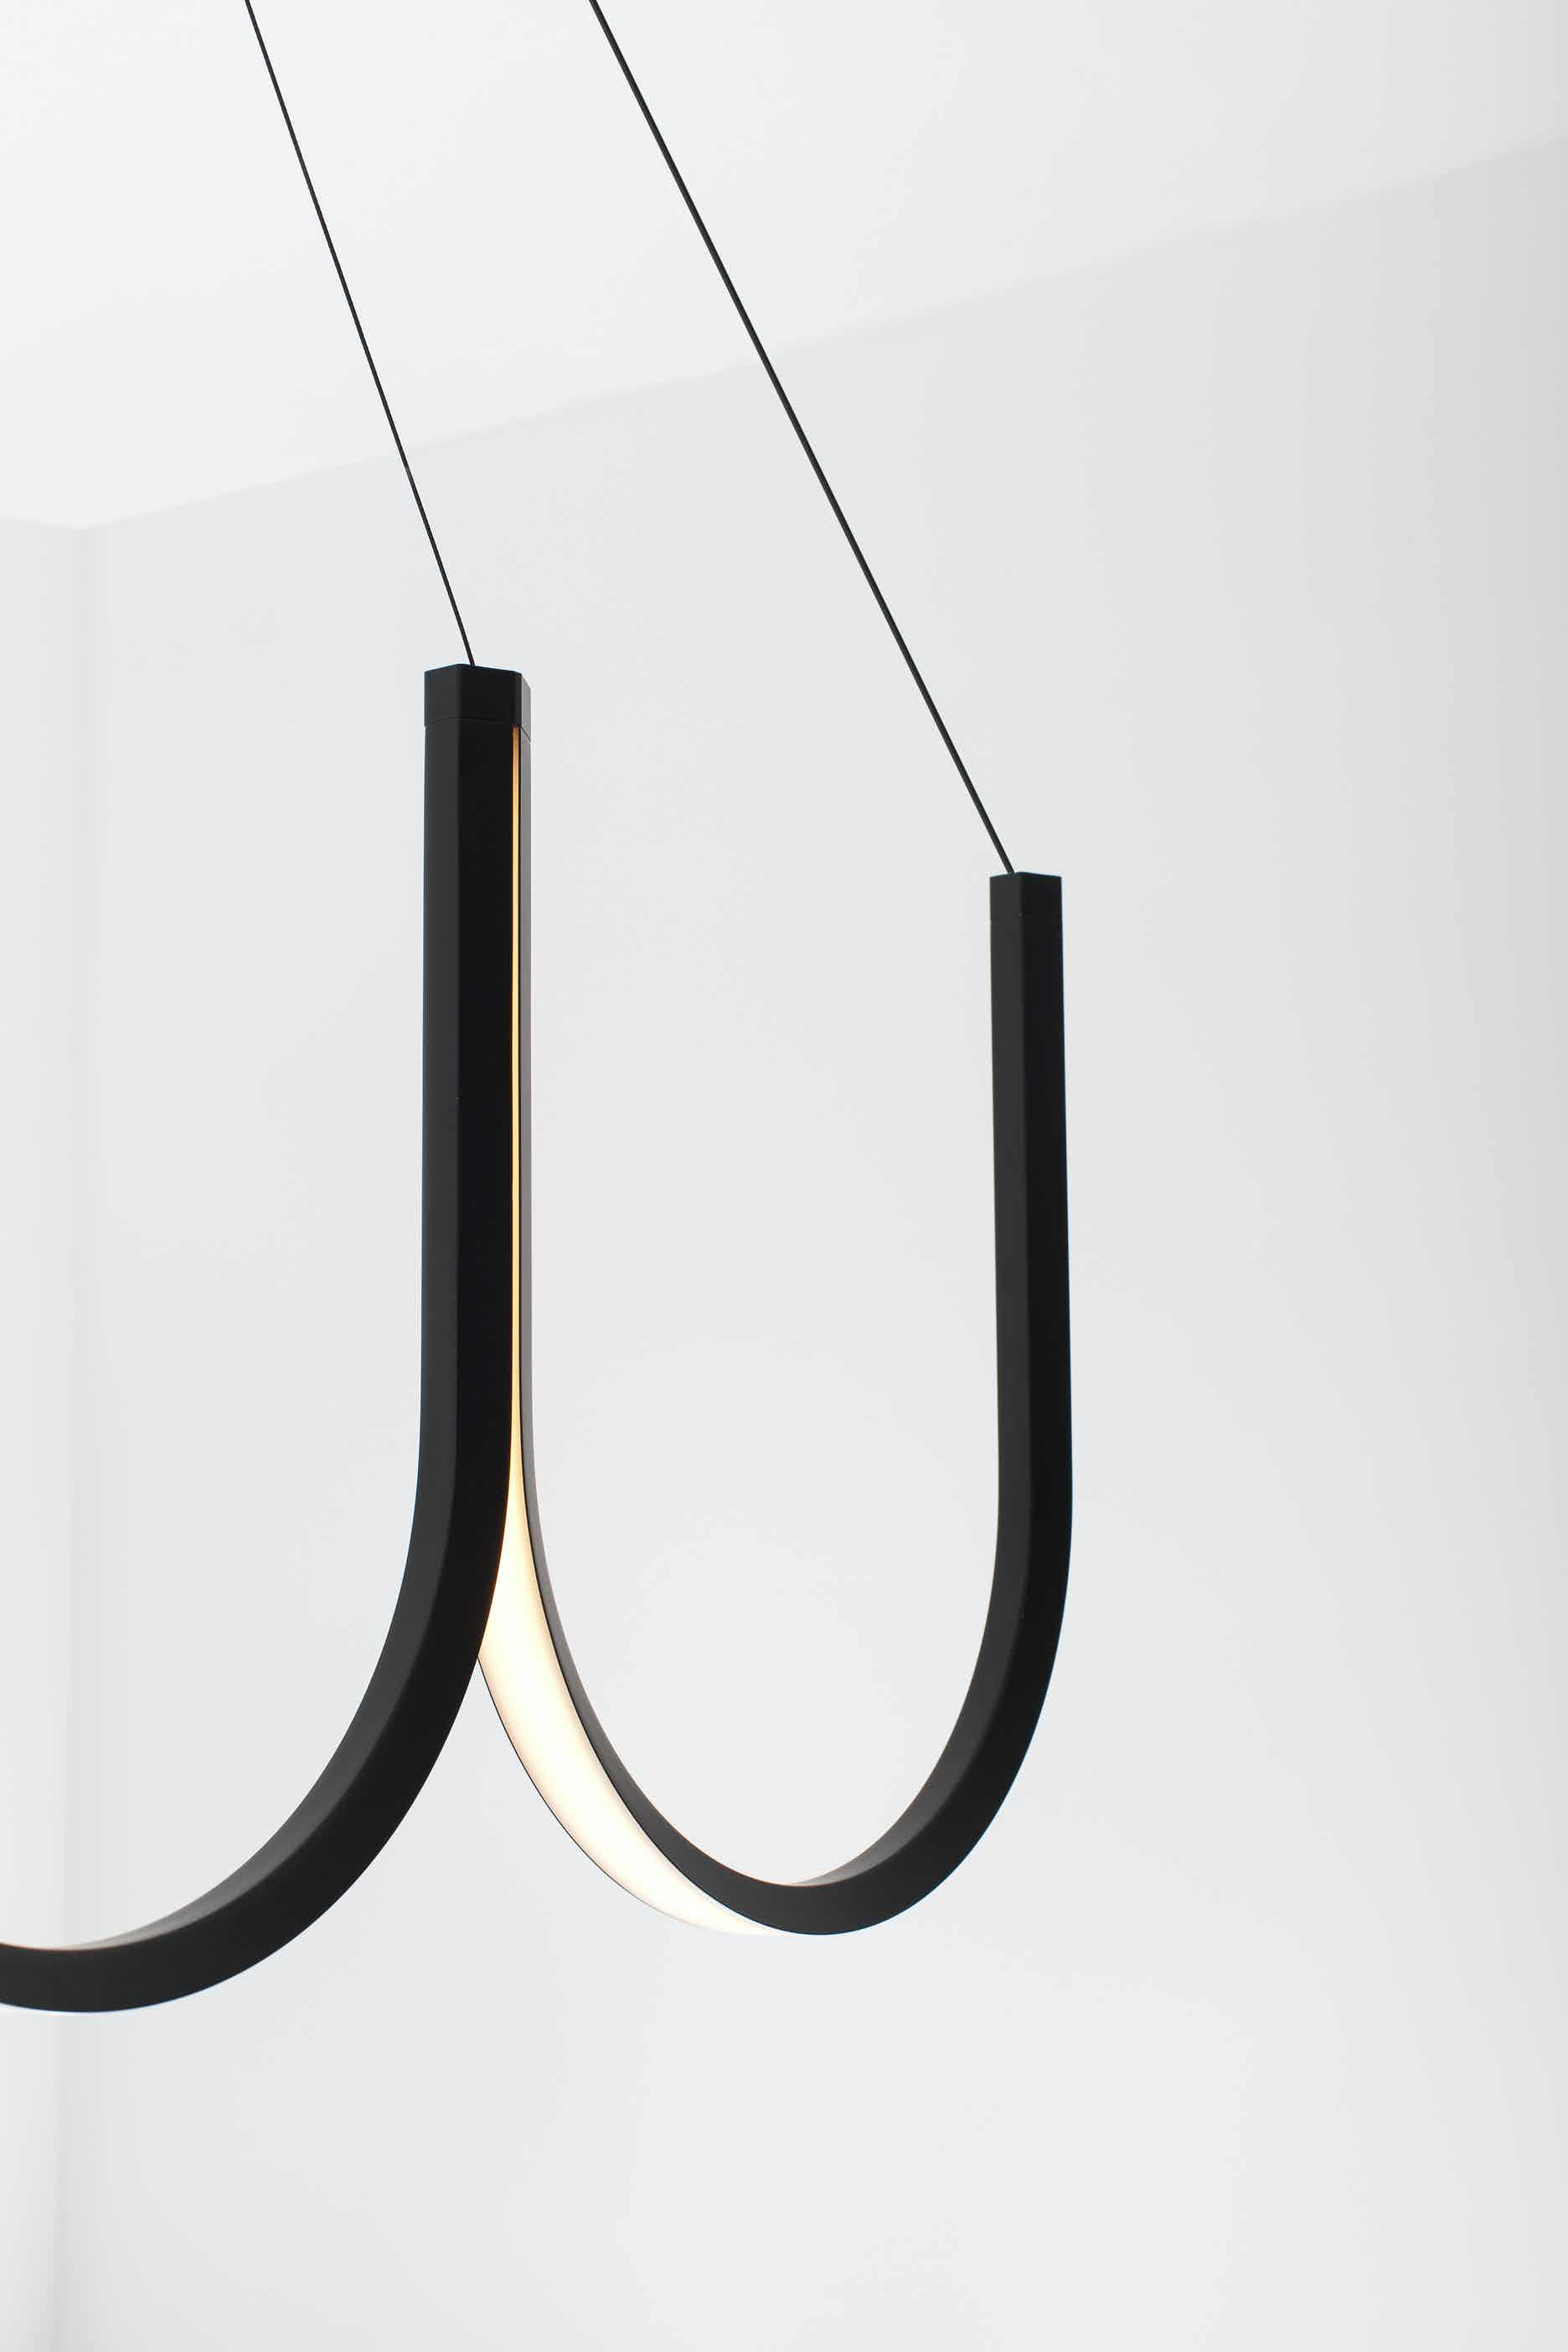 Arpel lighting u5 pendant led detail haute living